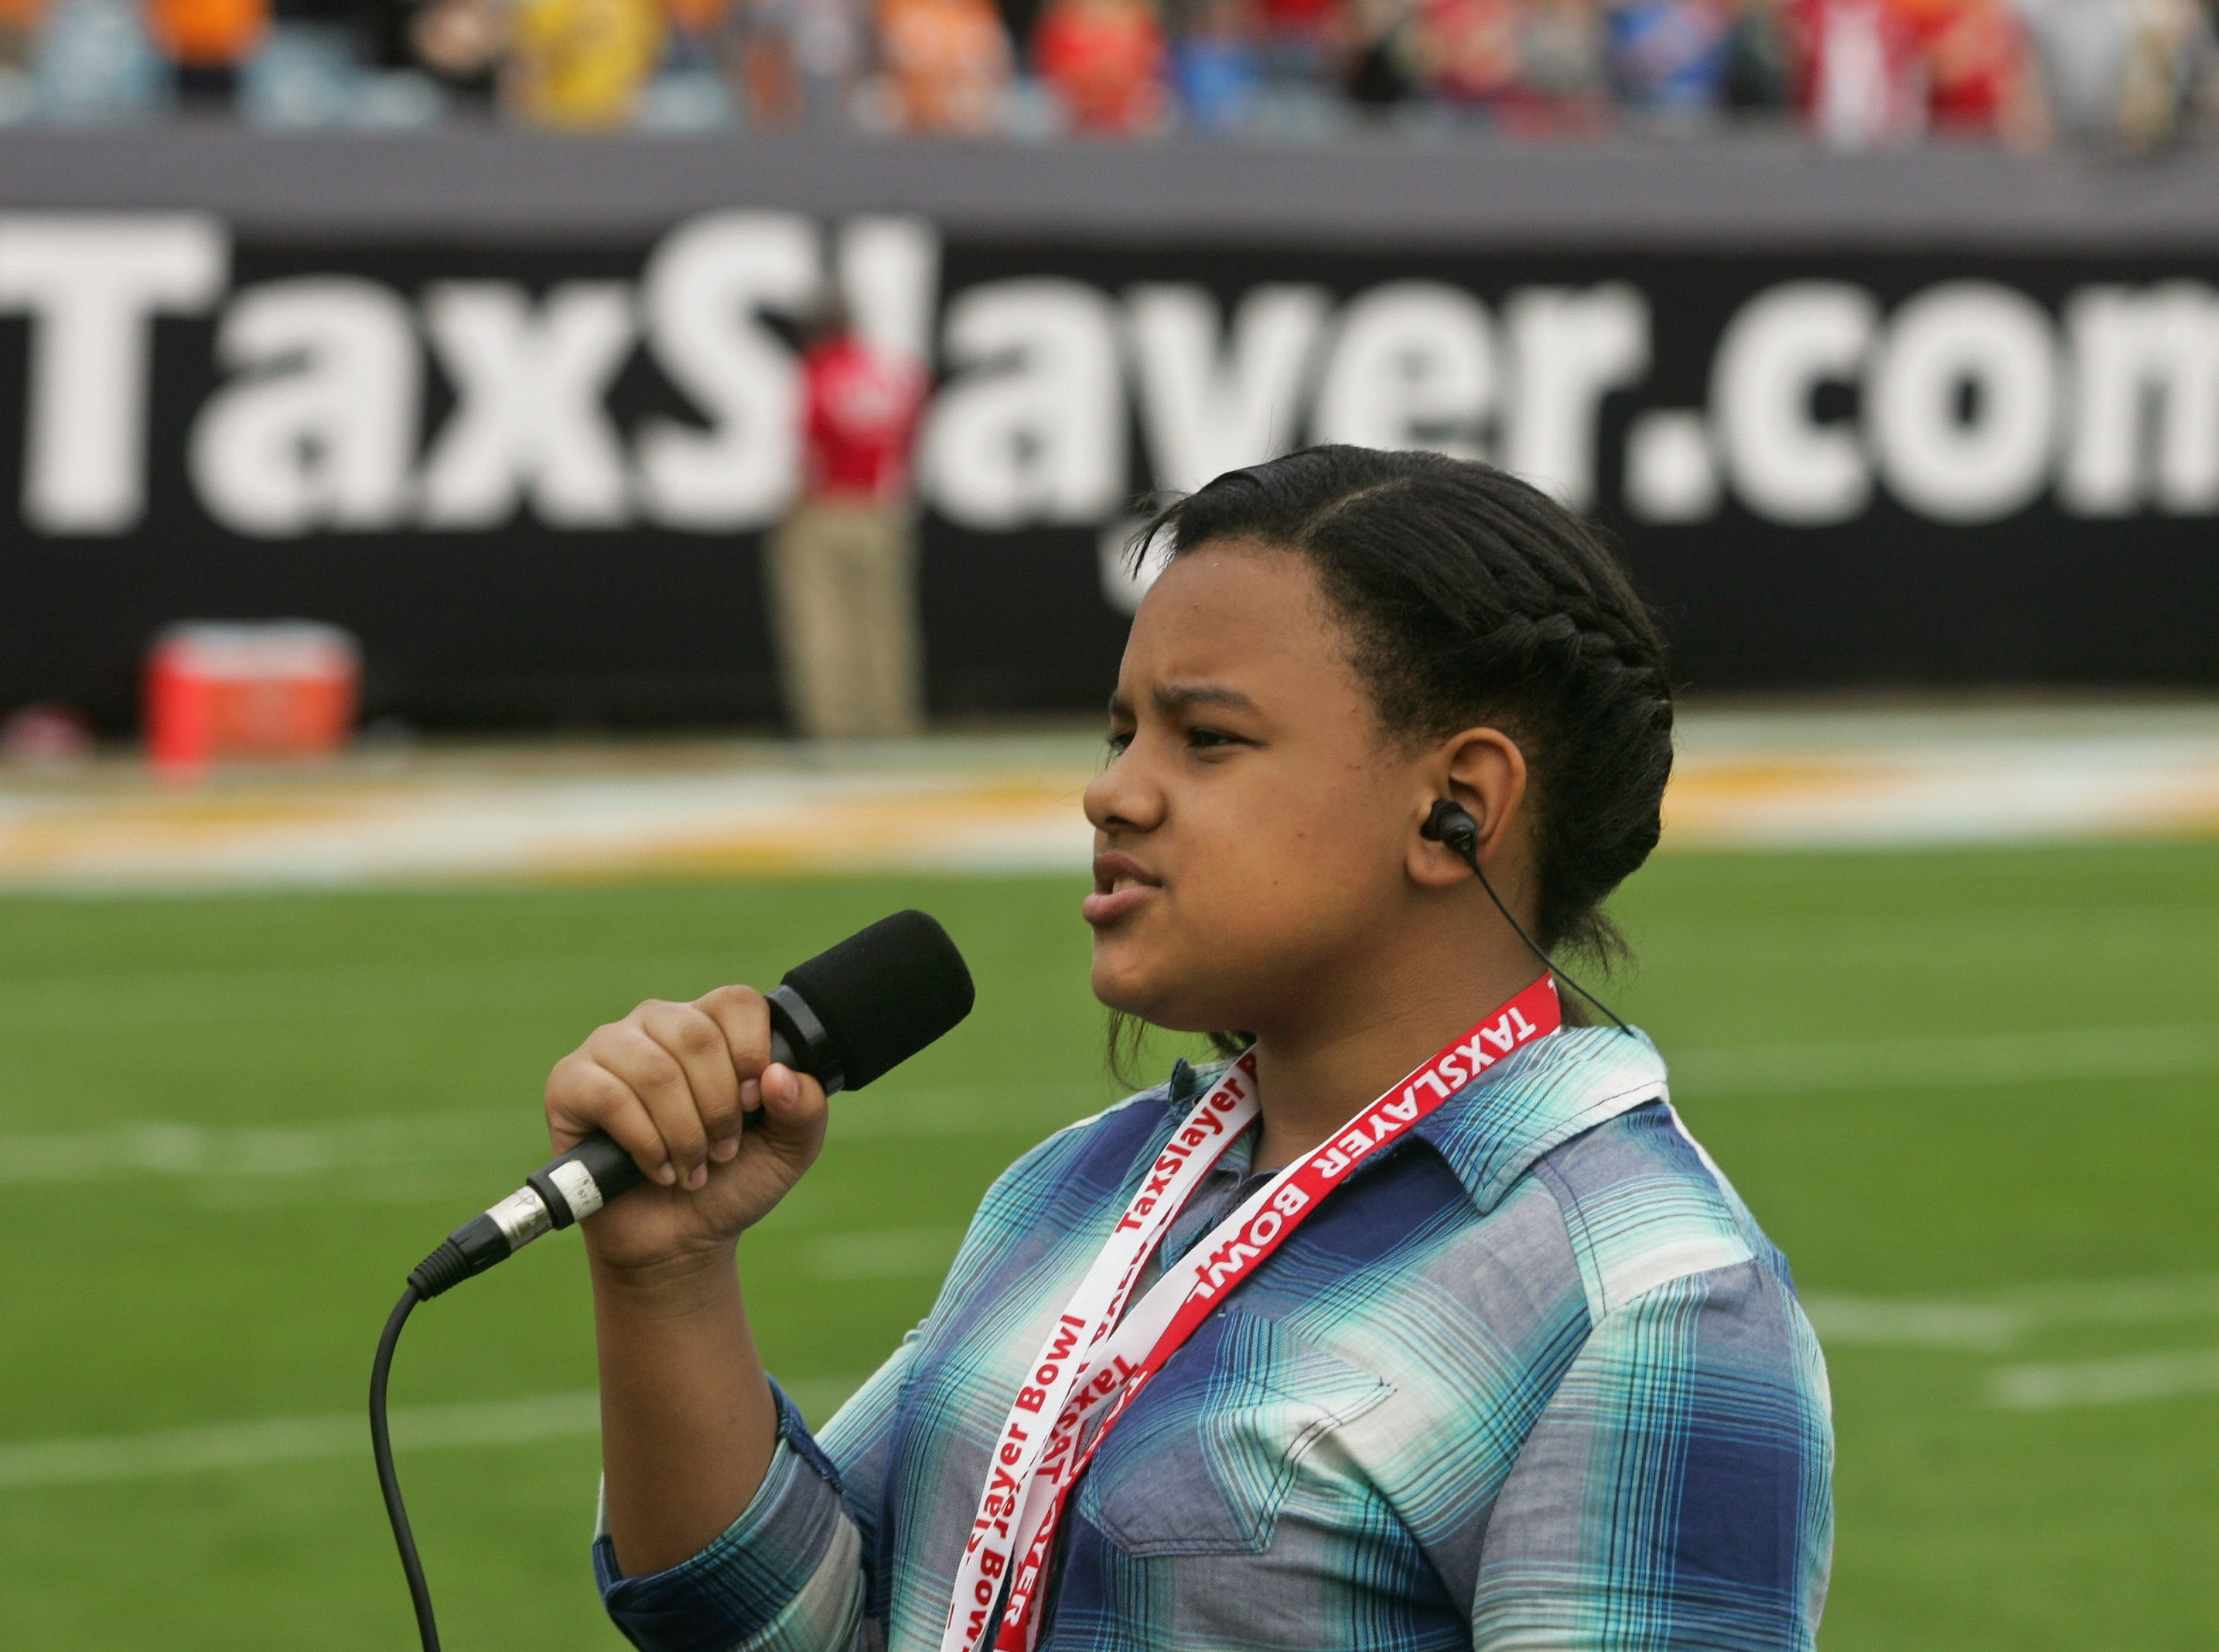 Jan 2, 2015; Jacksonville, FL, USA; Kiyana Williams sings the national anthem before the start of the 2015 TaxSlayer Bowl at EverBank Field. The Tennessee Volunteers beat the Iowa Hawkeyes 45-28. Mandatory Credit: Phil Sears-USA TODAY Sports